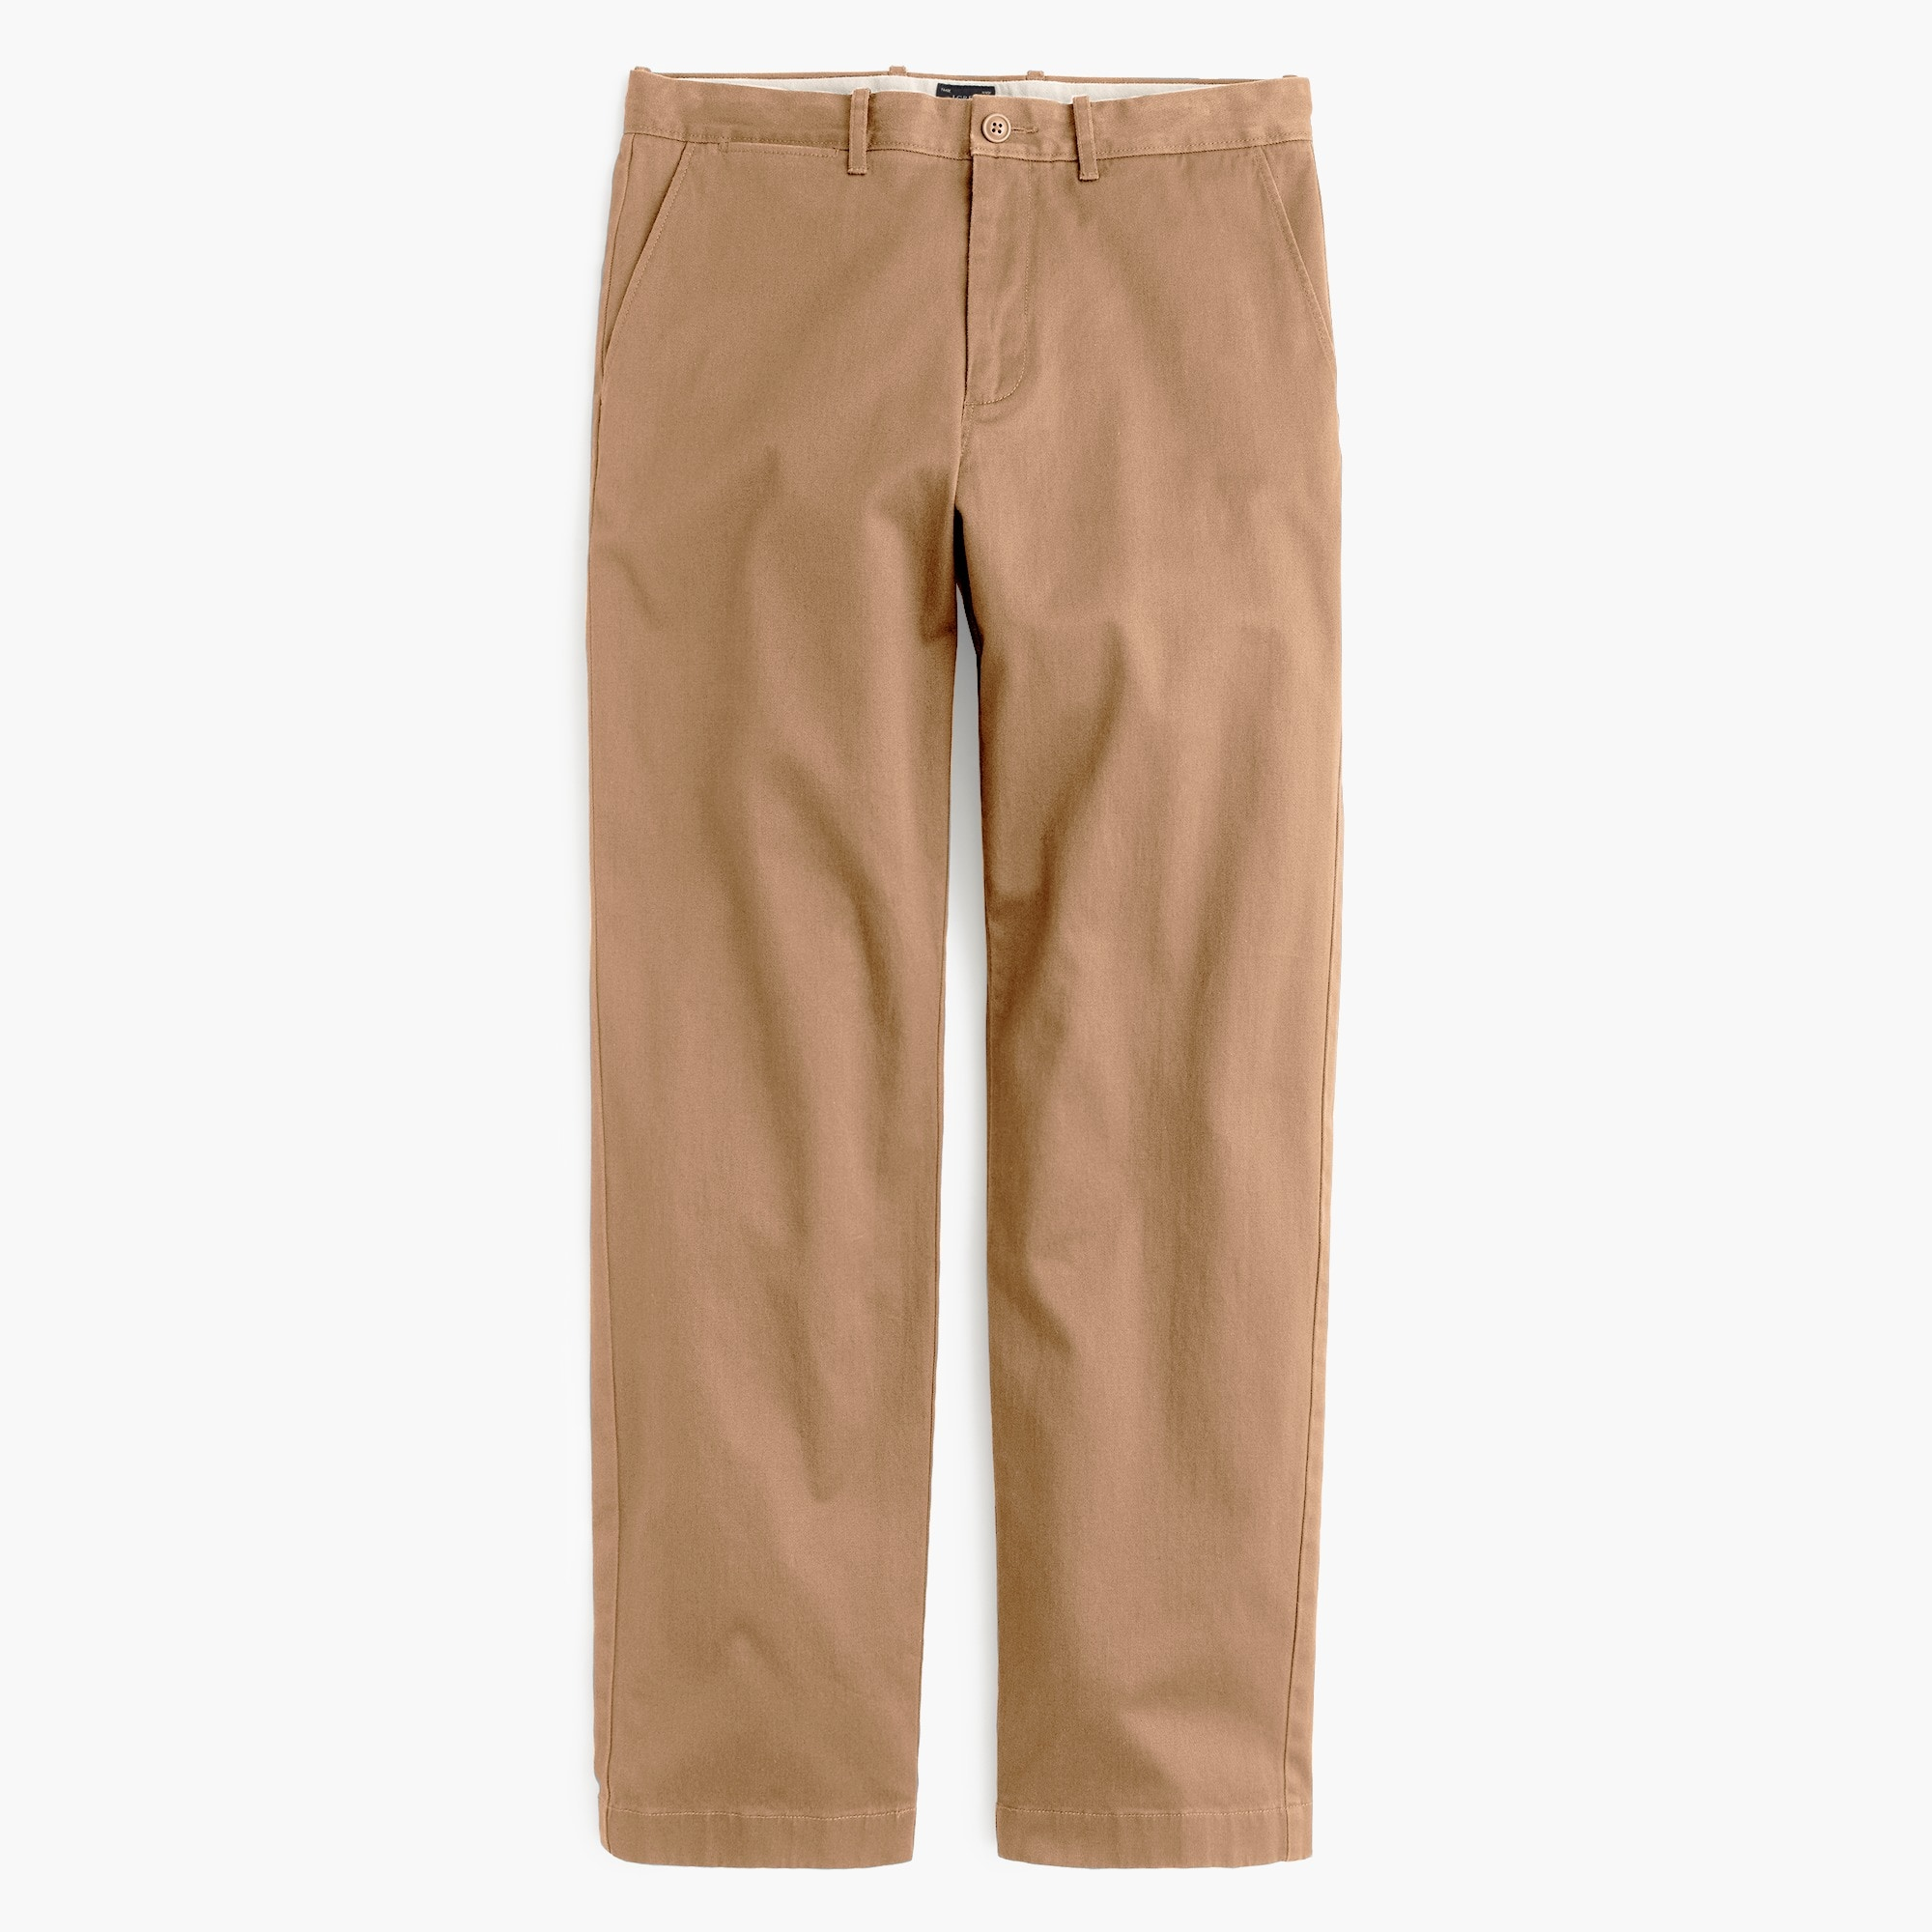 Image 2 for 1450 Relaxed-fit stretch chino